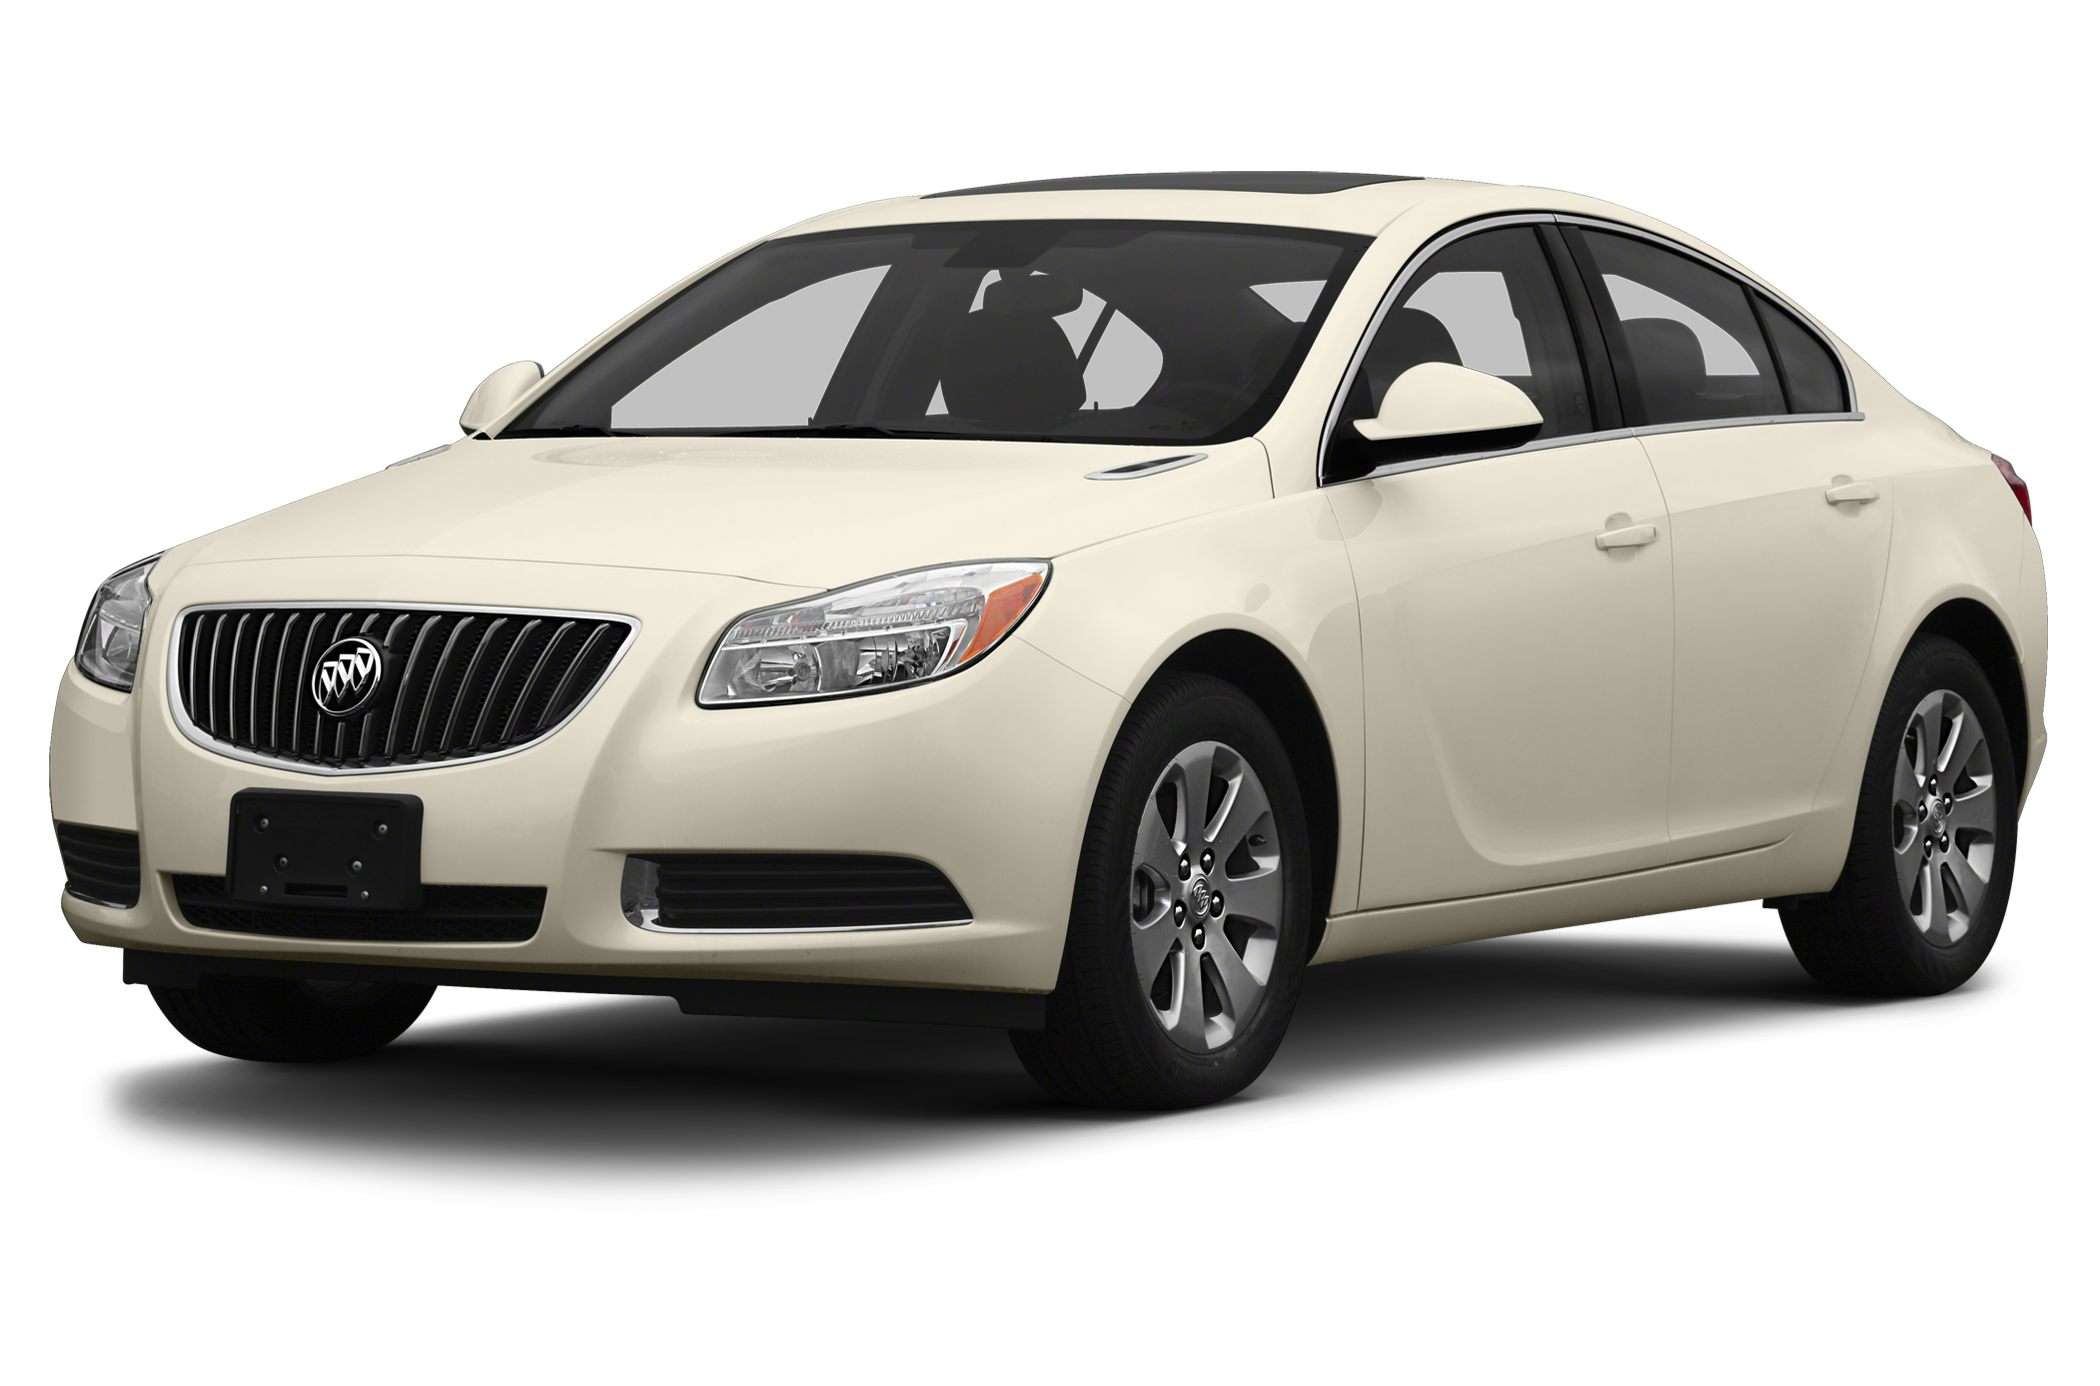 2013 Buick Regal Premium 1 Easily practice safe driving with anti-lock brakes parking assistance